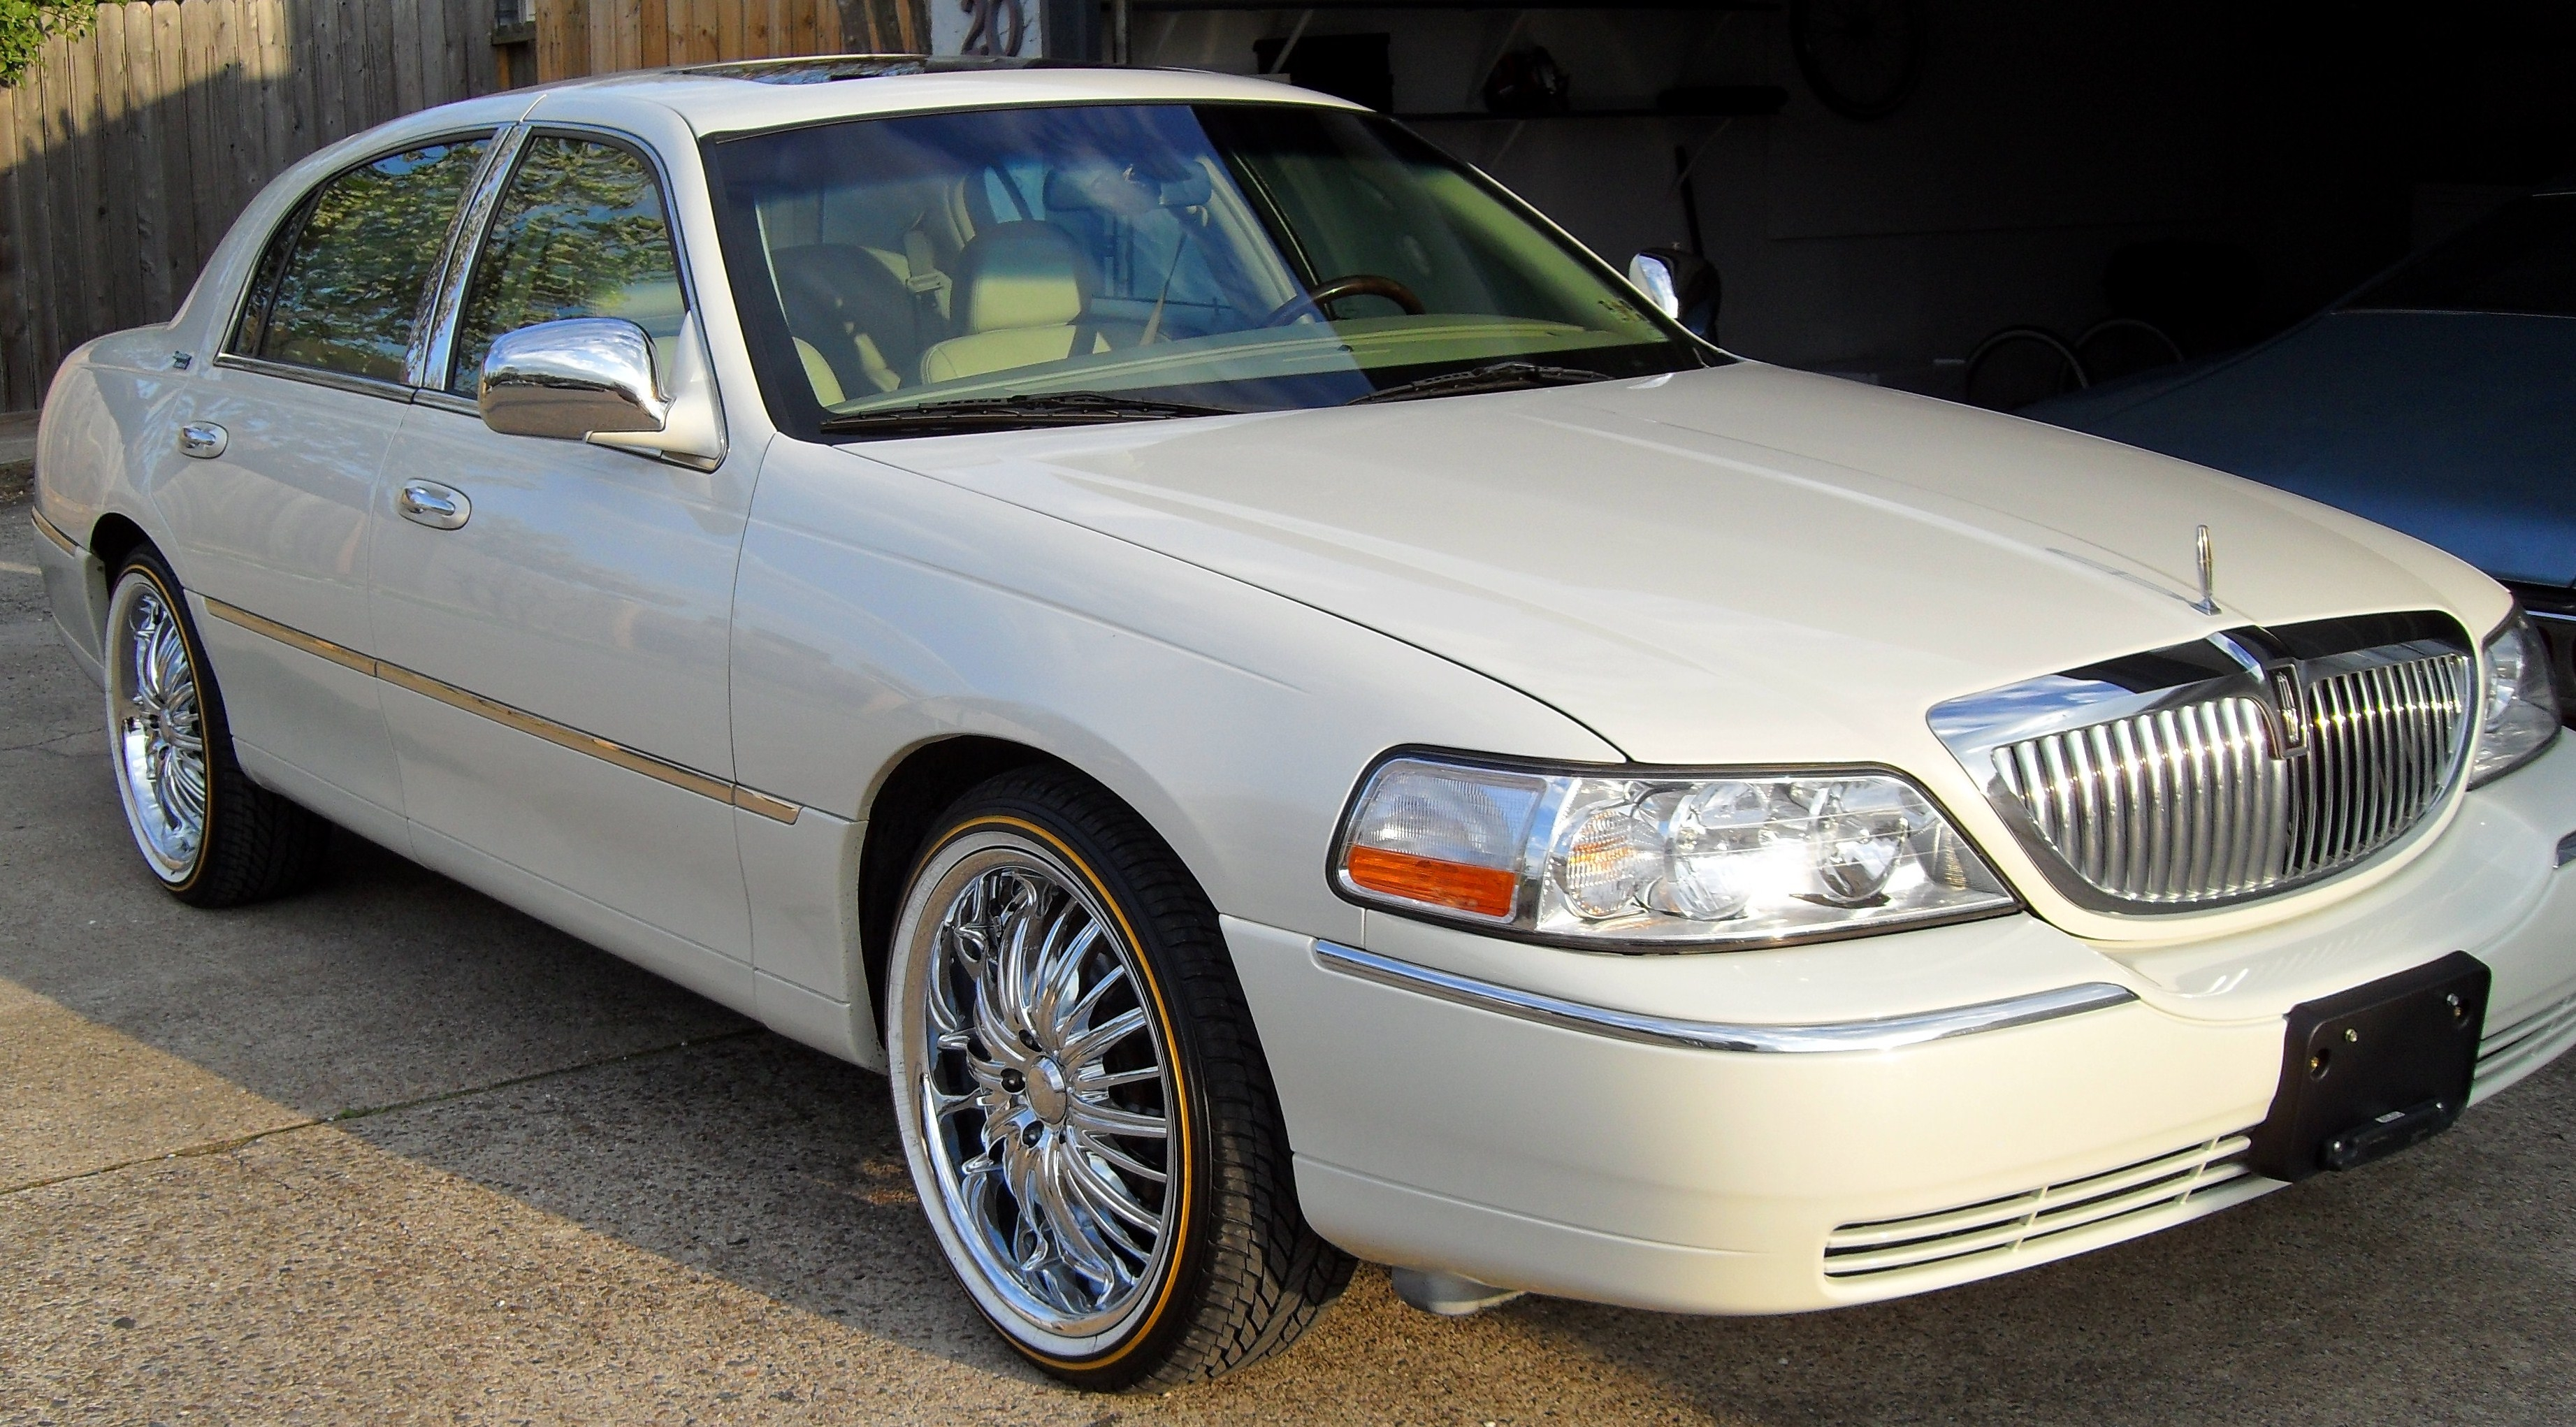 2006 lincoln town car size 3 1 mb resolution 3686x2042 type link file src